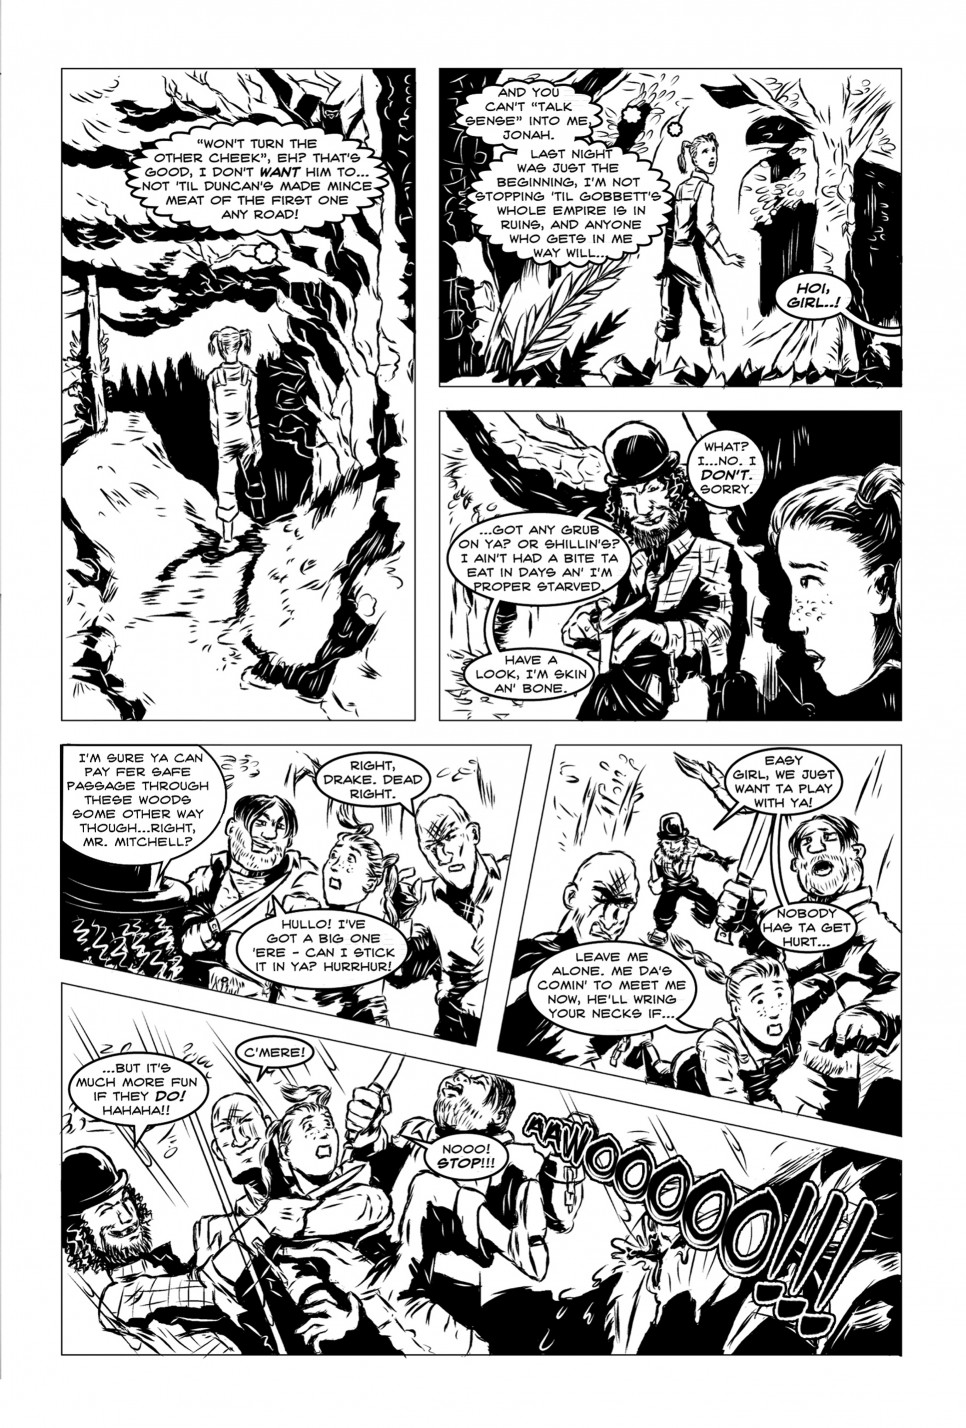 Vanguard! Issue 2, Mammoth-Jack!, page 2